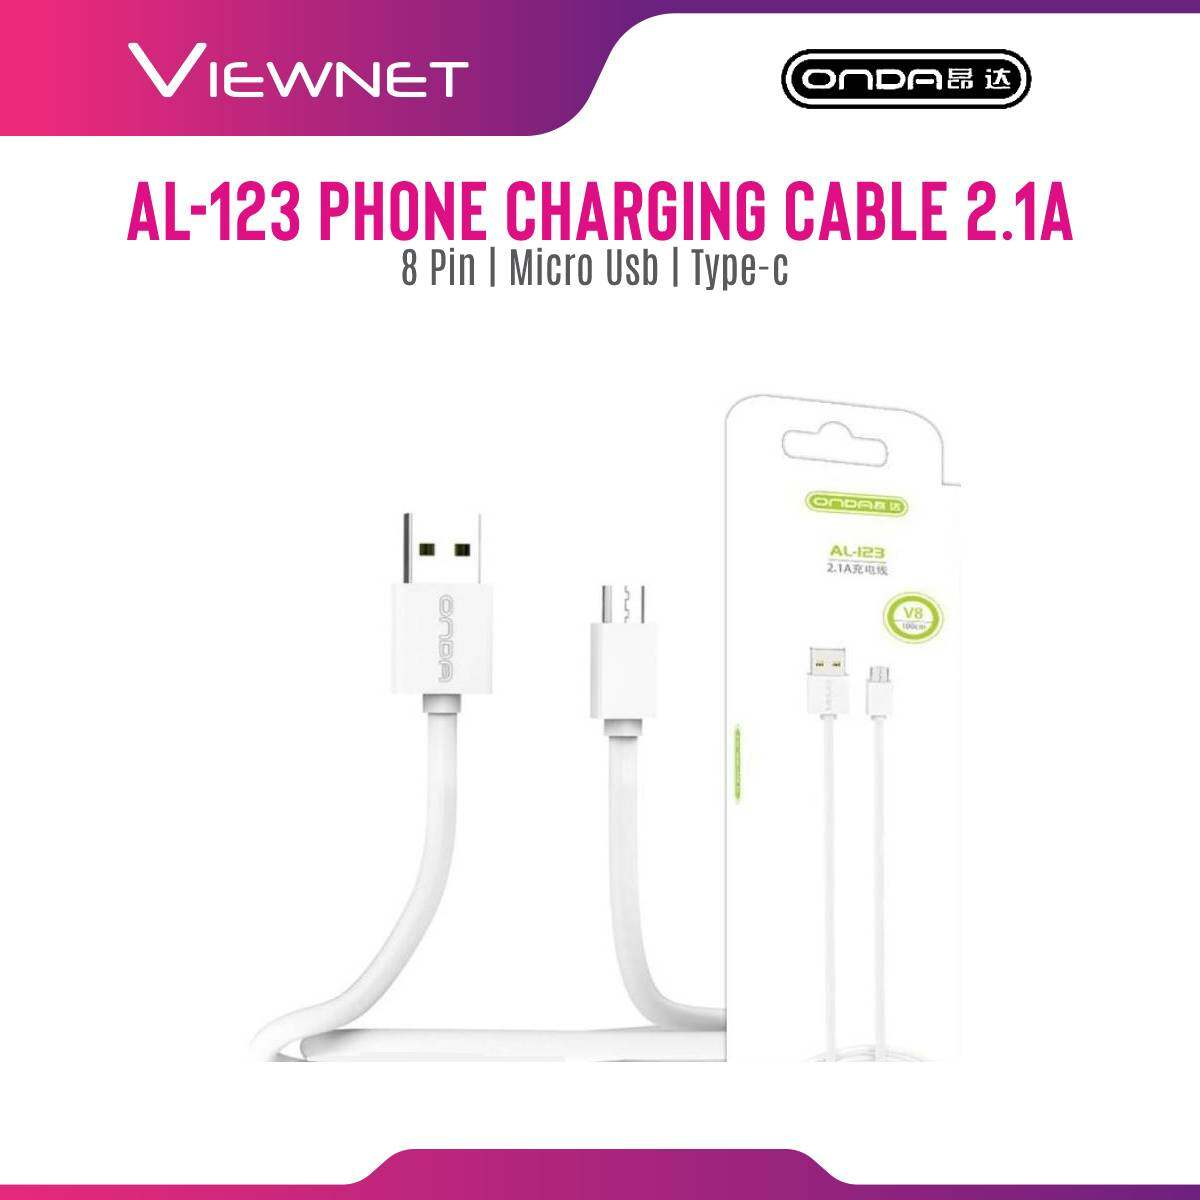 [LAZCHOICE] Onda Apple 8 Pin / Type-C / Micro USB 2.1A Fast Charge & Sync Cable with Overvoltage Protection